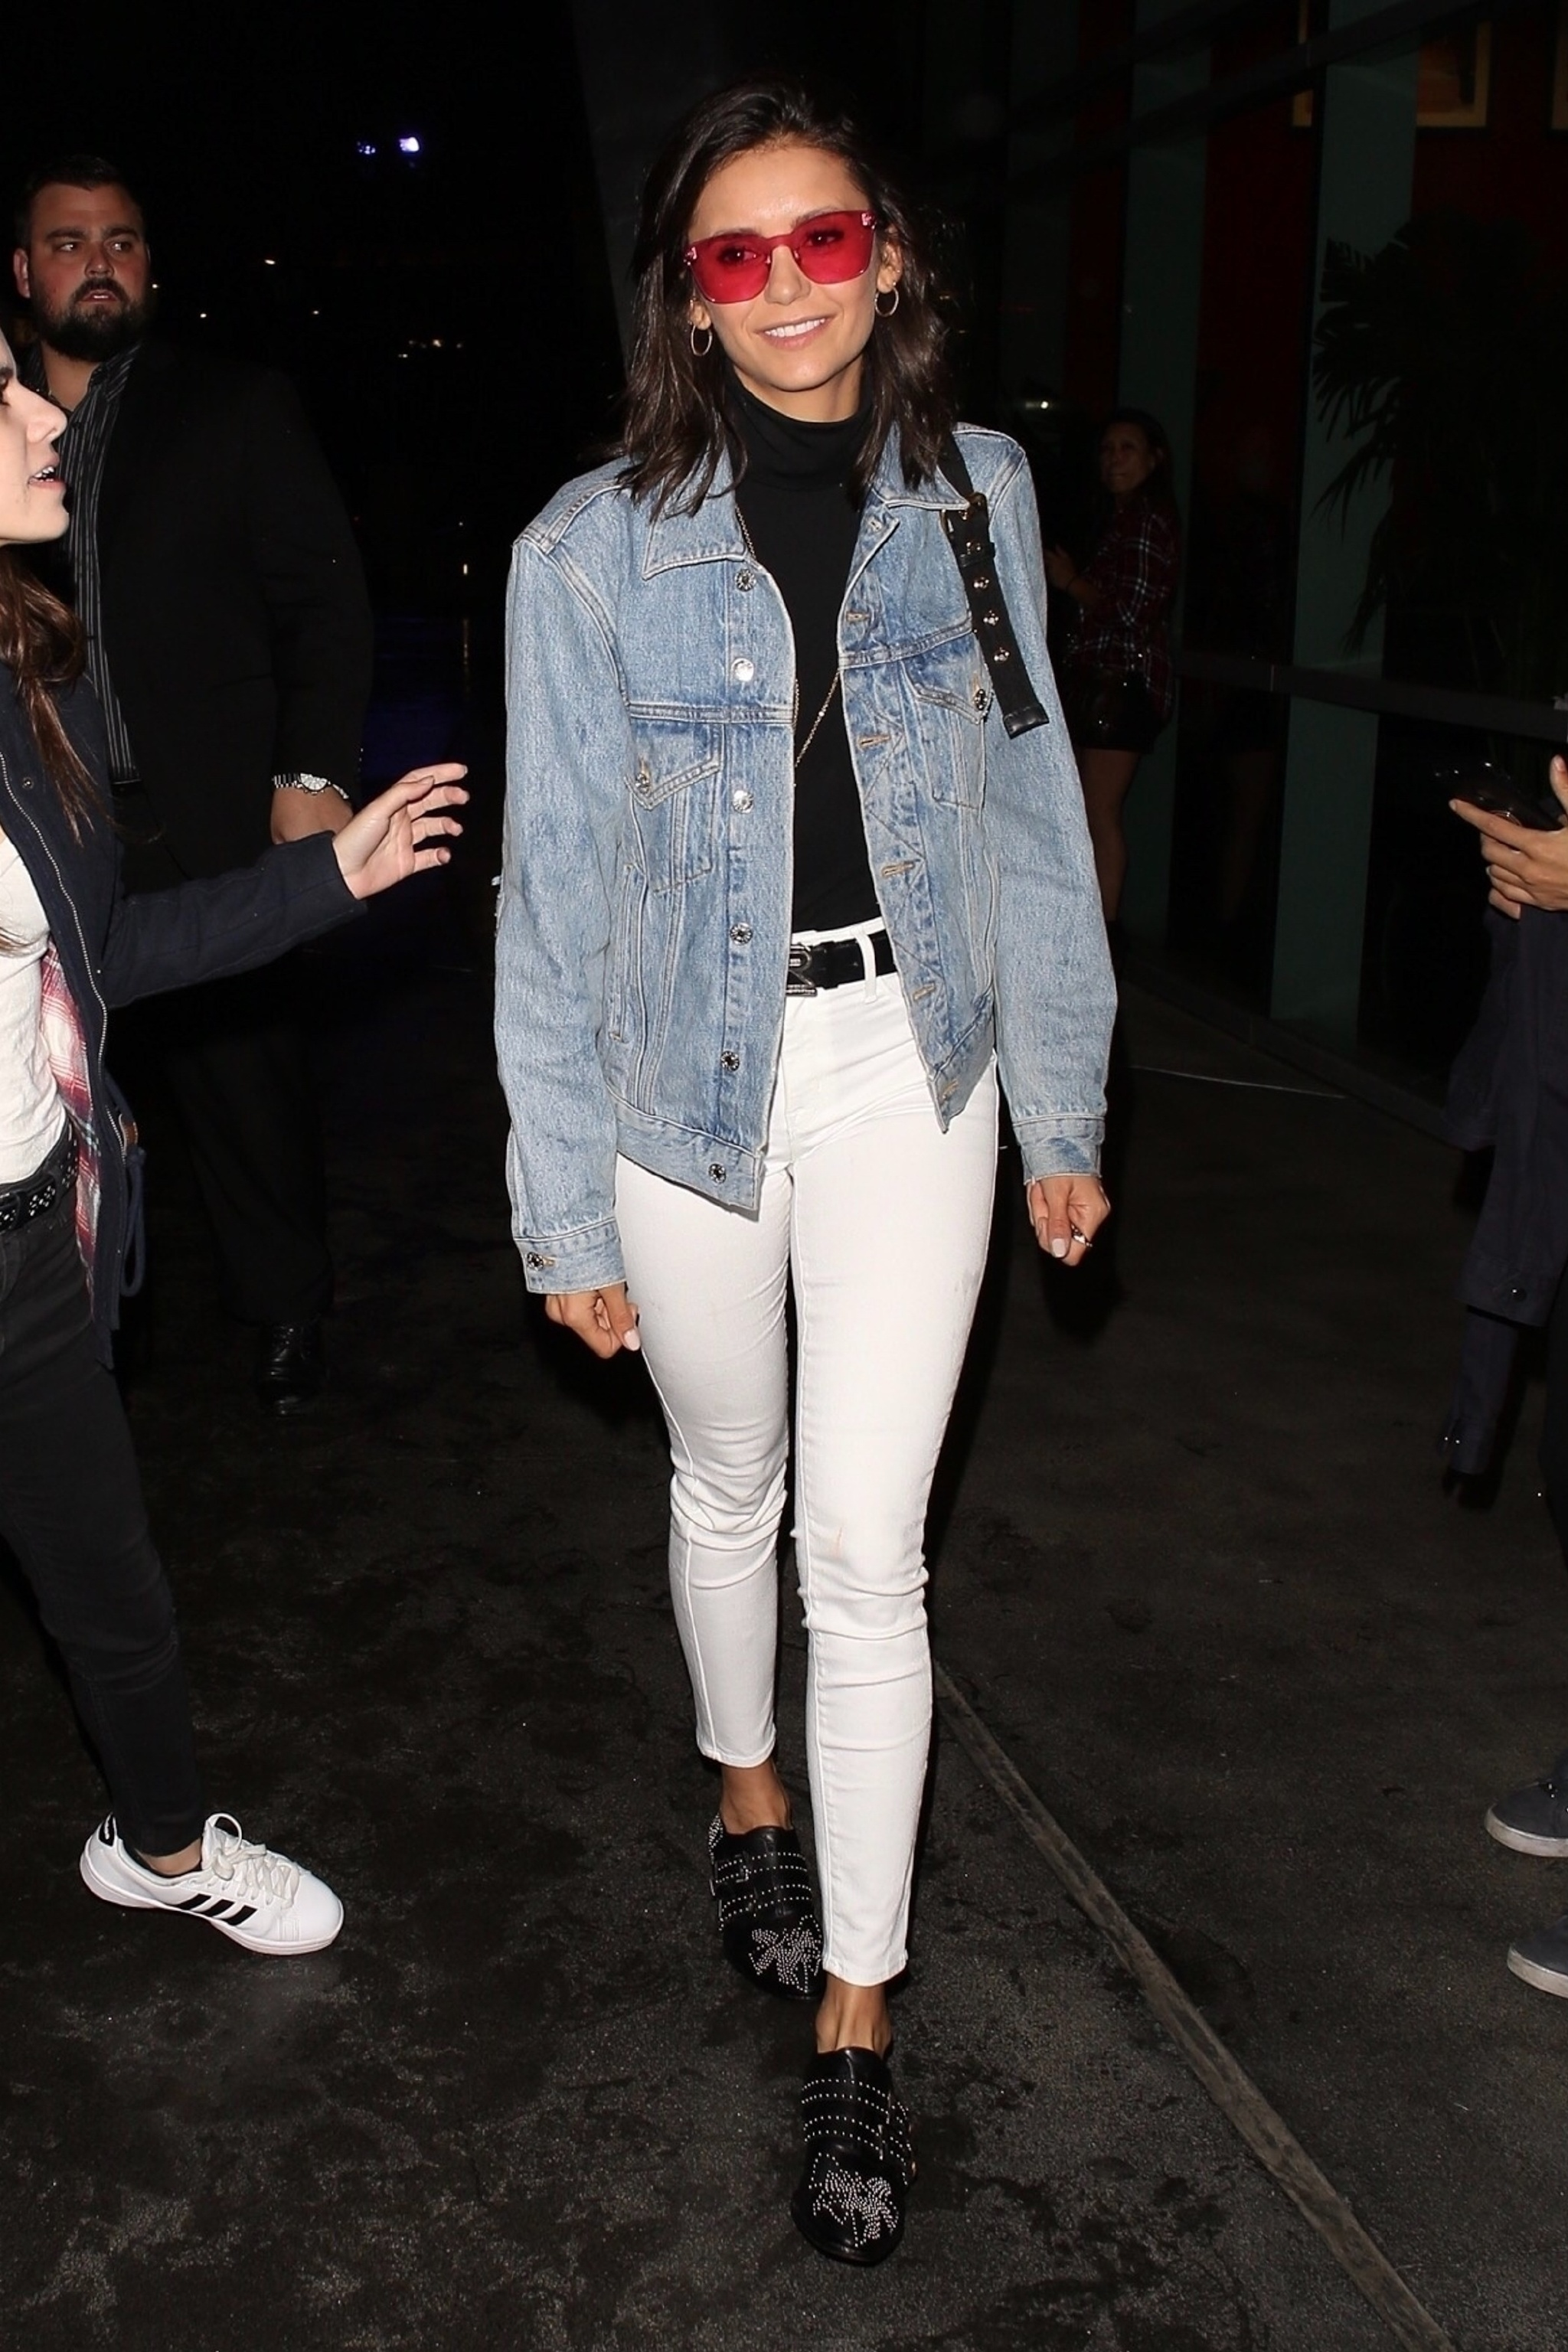 Nina Dobrev stops by the Staples Center for Drake and Migos concert in Los Angeles